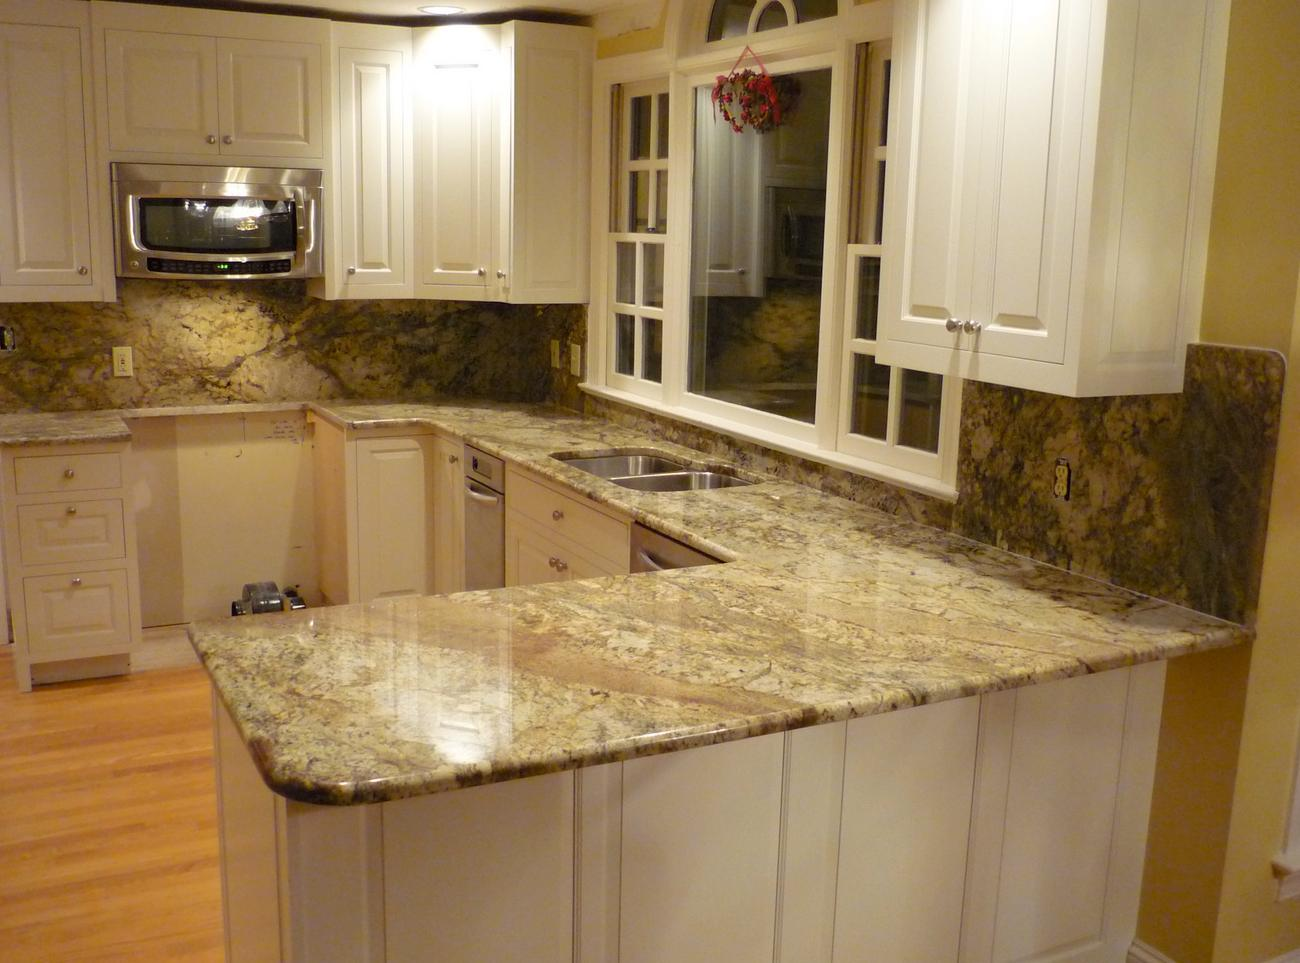 Kitchen Countertops Ideas Photos Granite Quartz Laminate Kitchen Countertops Ideas Photos